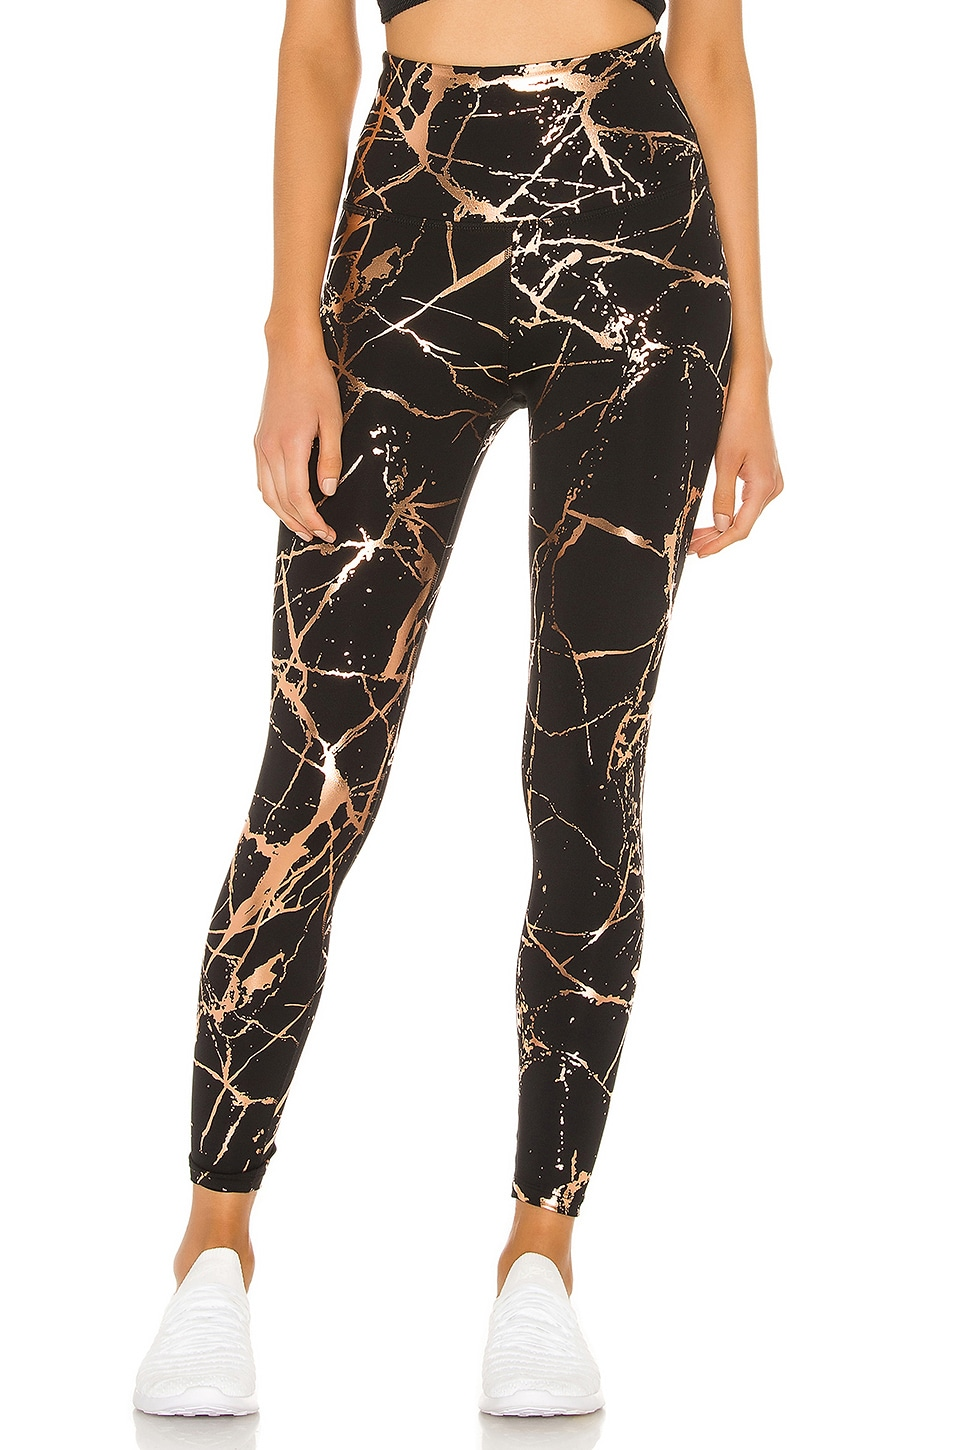 Beyond Yoga Lost Your Marbles High Waisted Midi Legging in Black Shiny & Rose Gold Marble